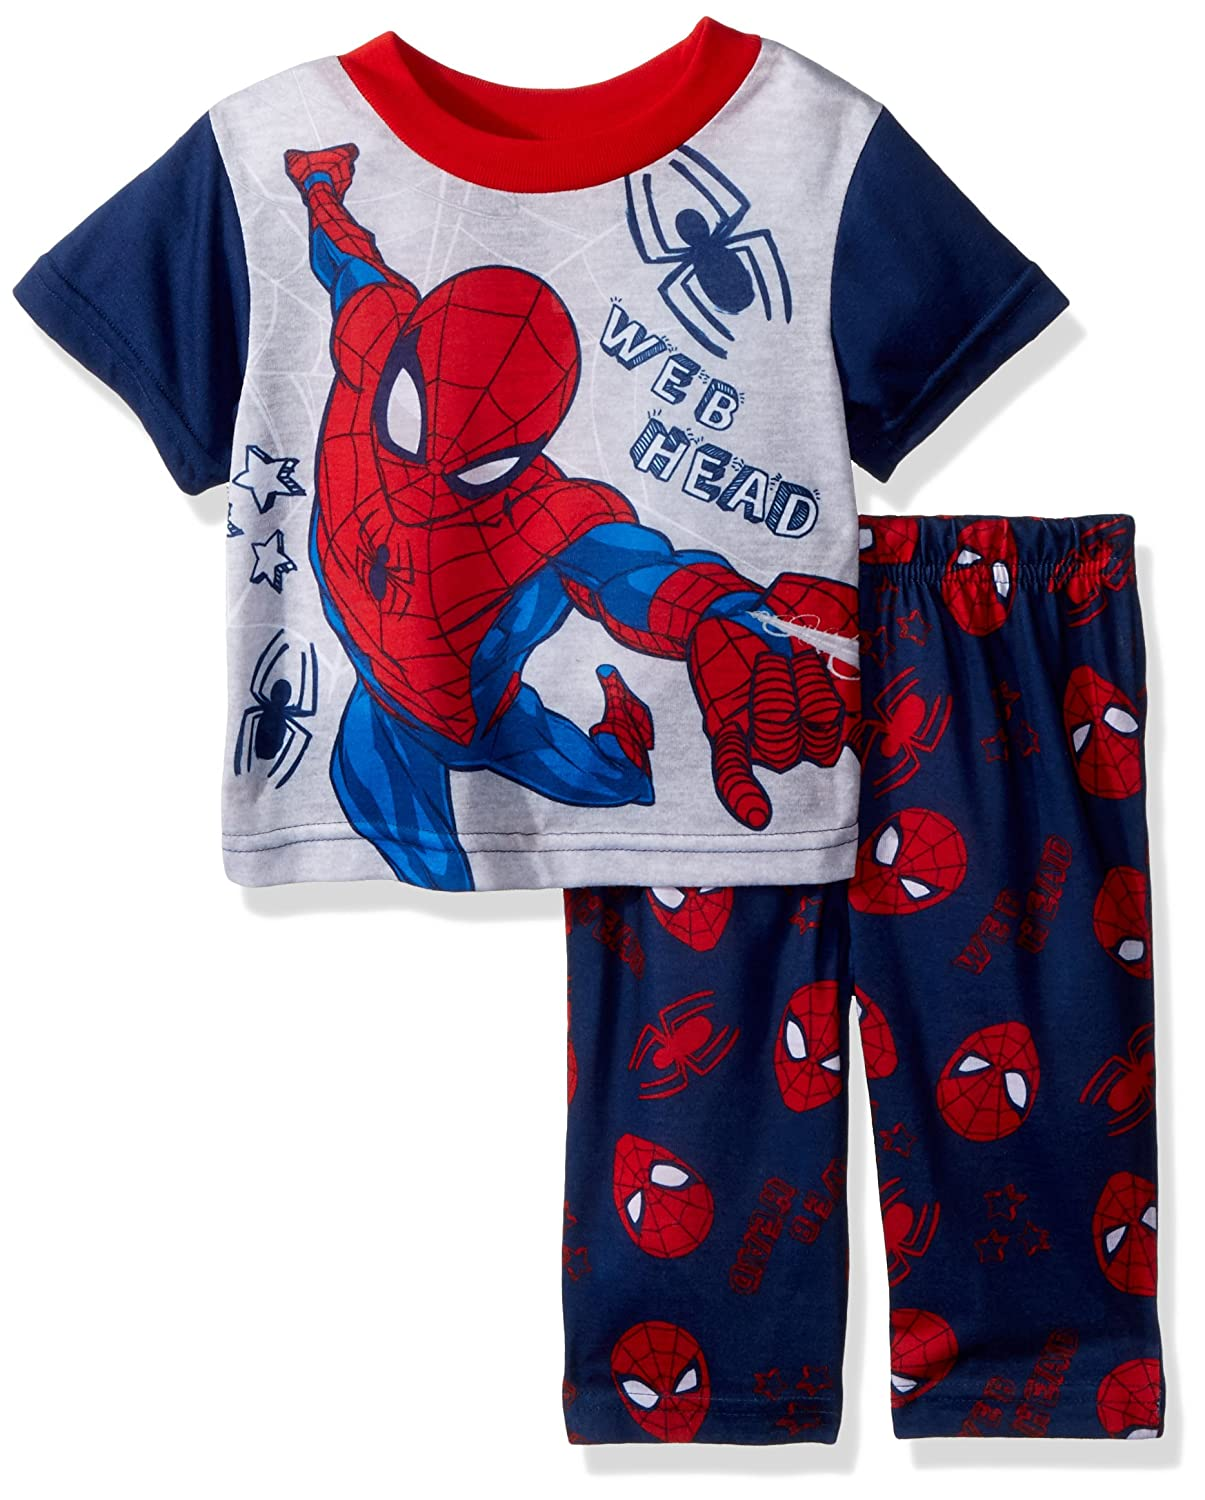 Spiderman Baby Boys 2-Piece Pajama Set 18M 21SM027YSLZA-P6 Navy Web